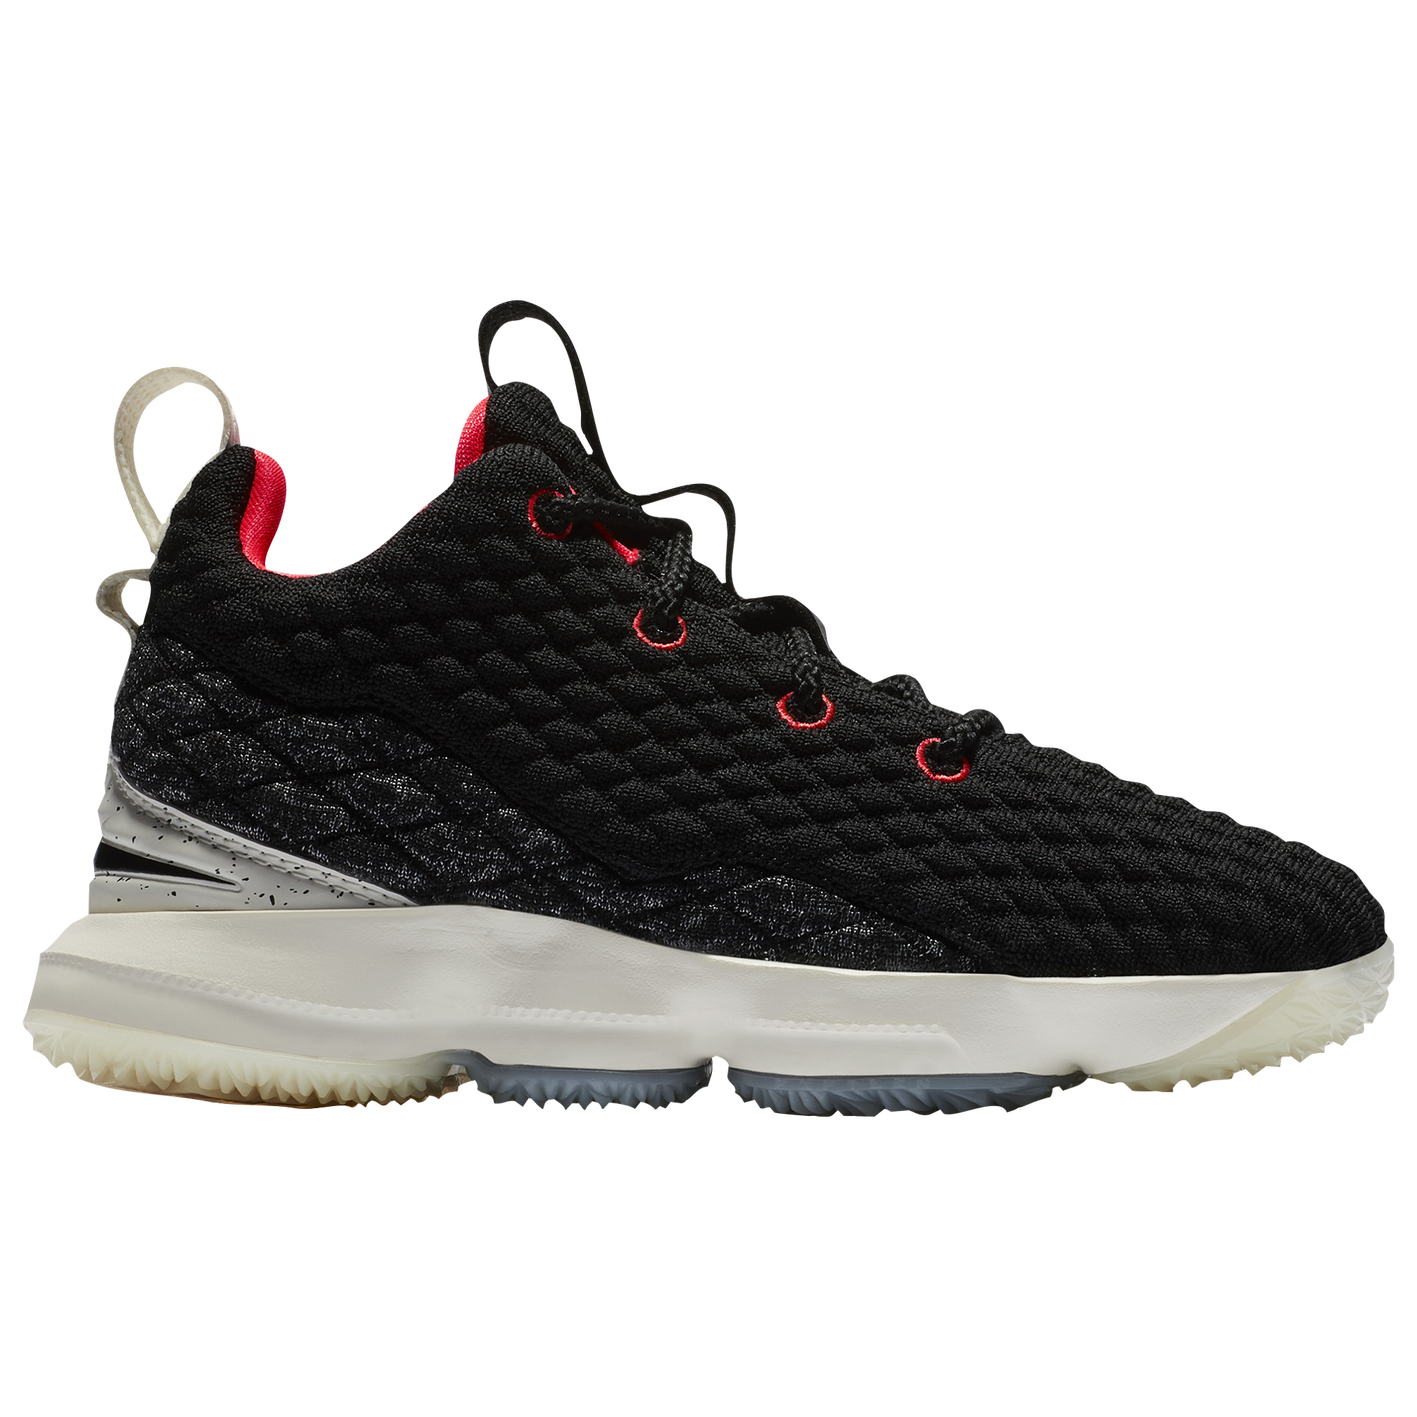 7ee9c1e160a Nike LeBron 15 - Boys  Preschool.  49.99 -  79.99. Product    Q6177002.  Selected Style  James